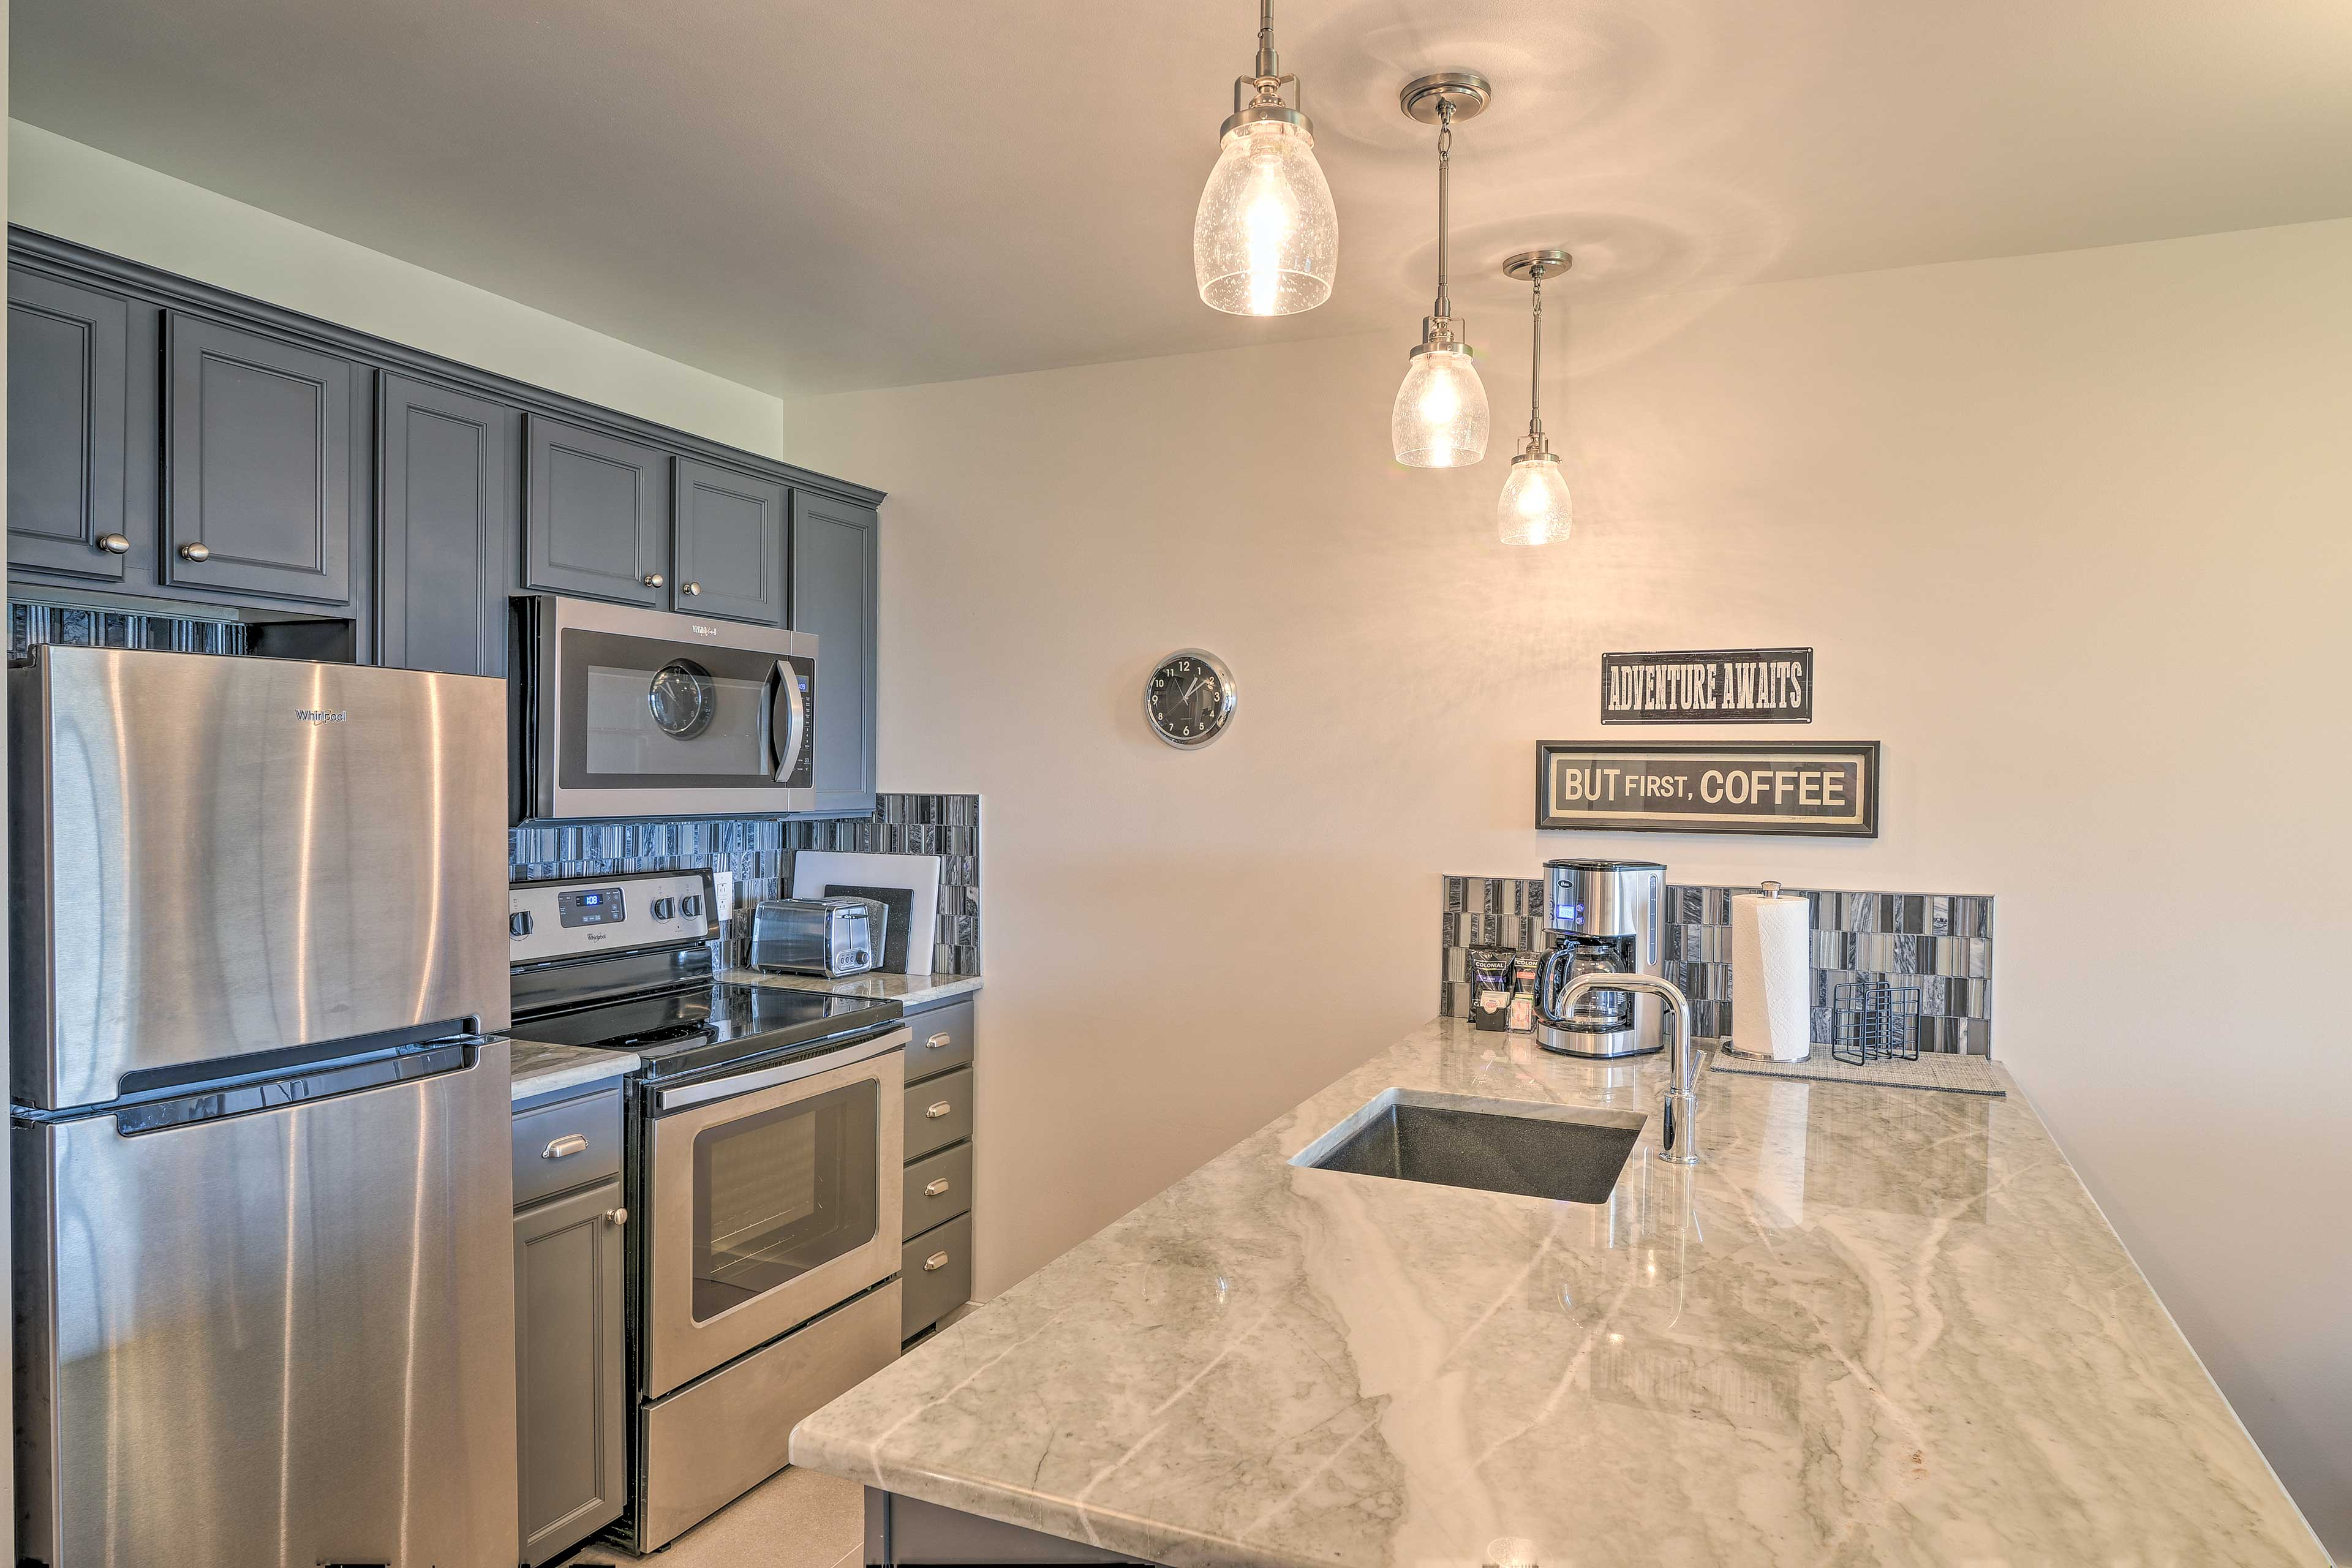 Inside, you'll find all of the comforts of home like a fully equipped kitchen.